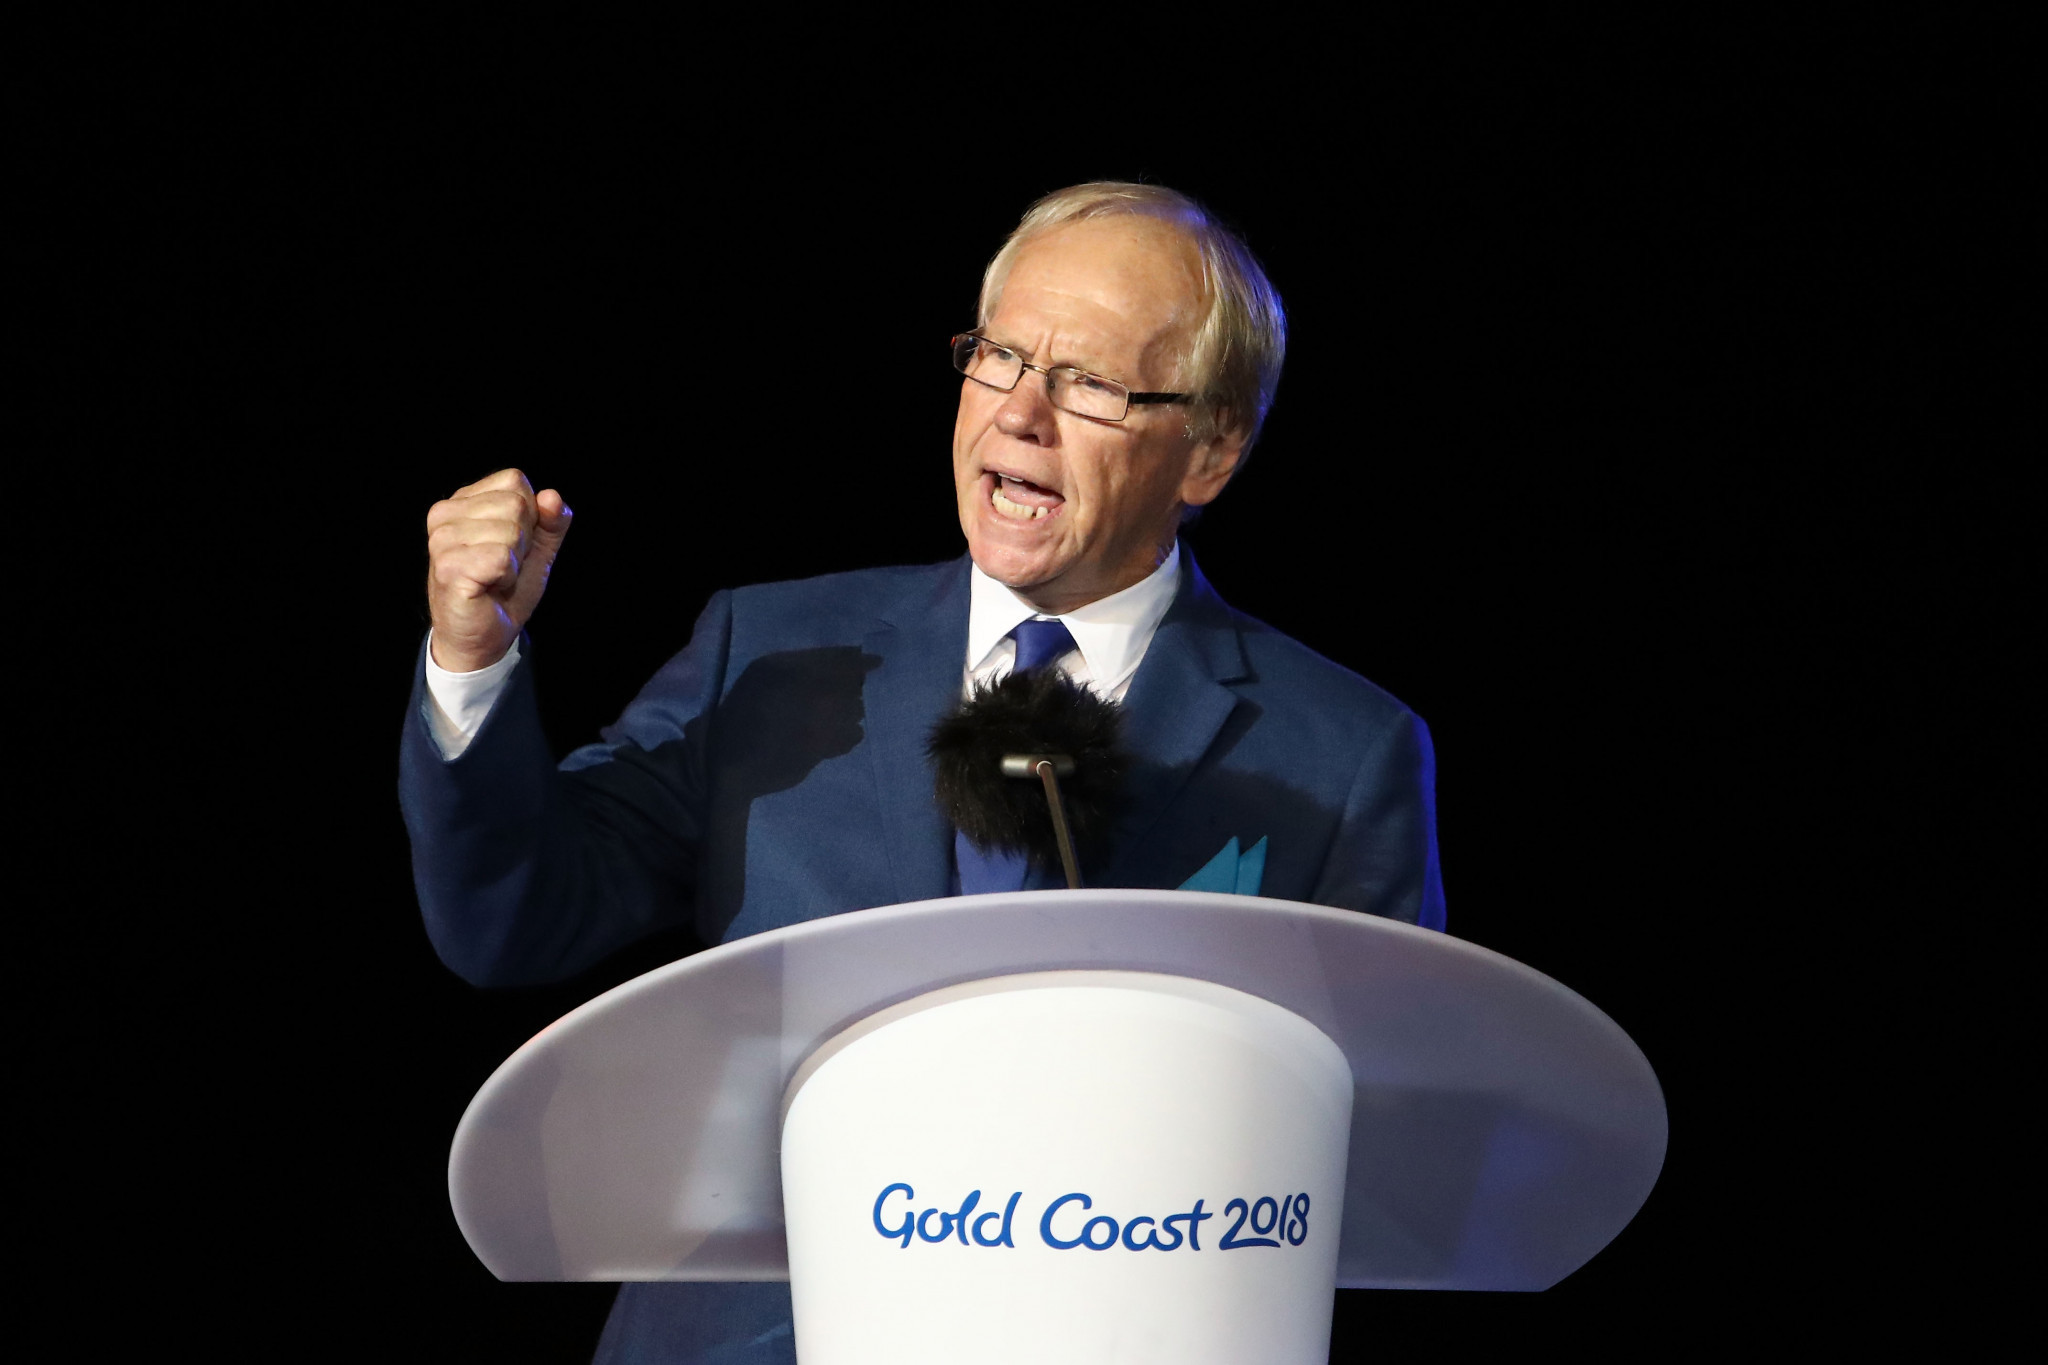 Gold Coast 2018 chairman apologises after television viewers upset at not seeing athletes parade in Closing Ceremony